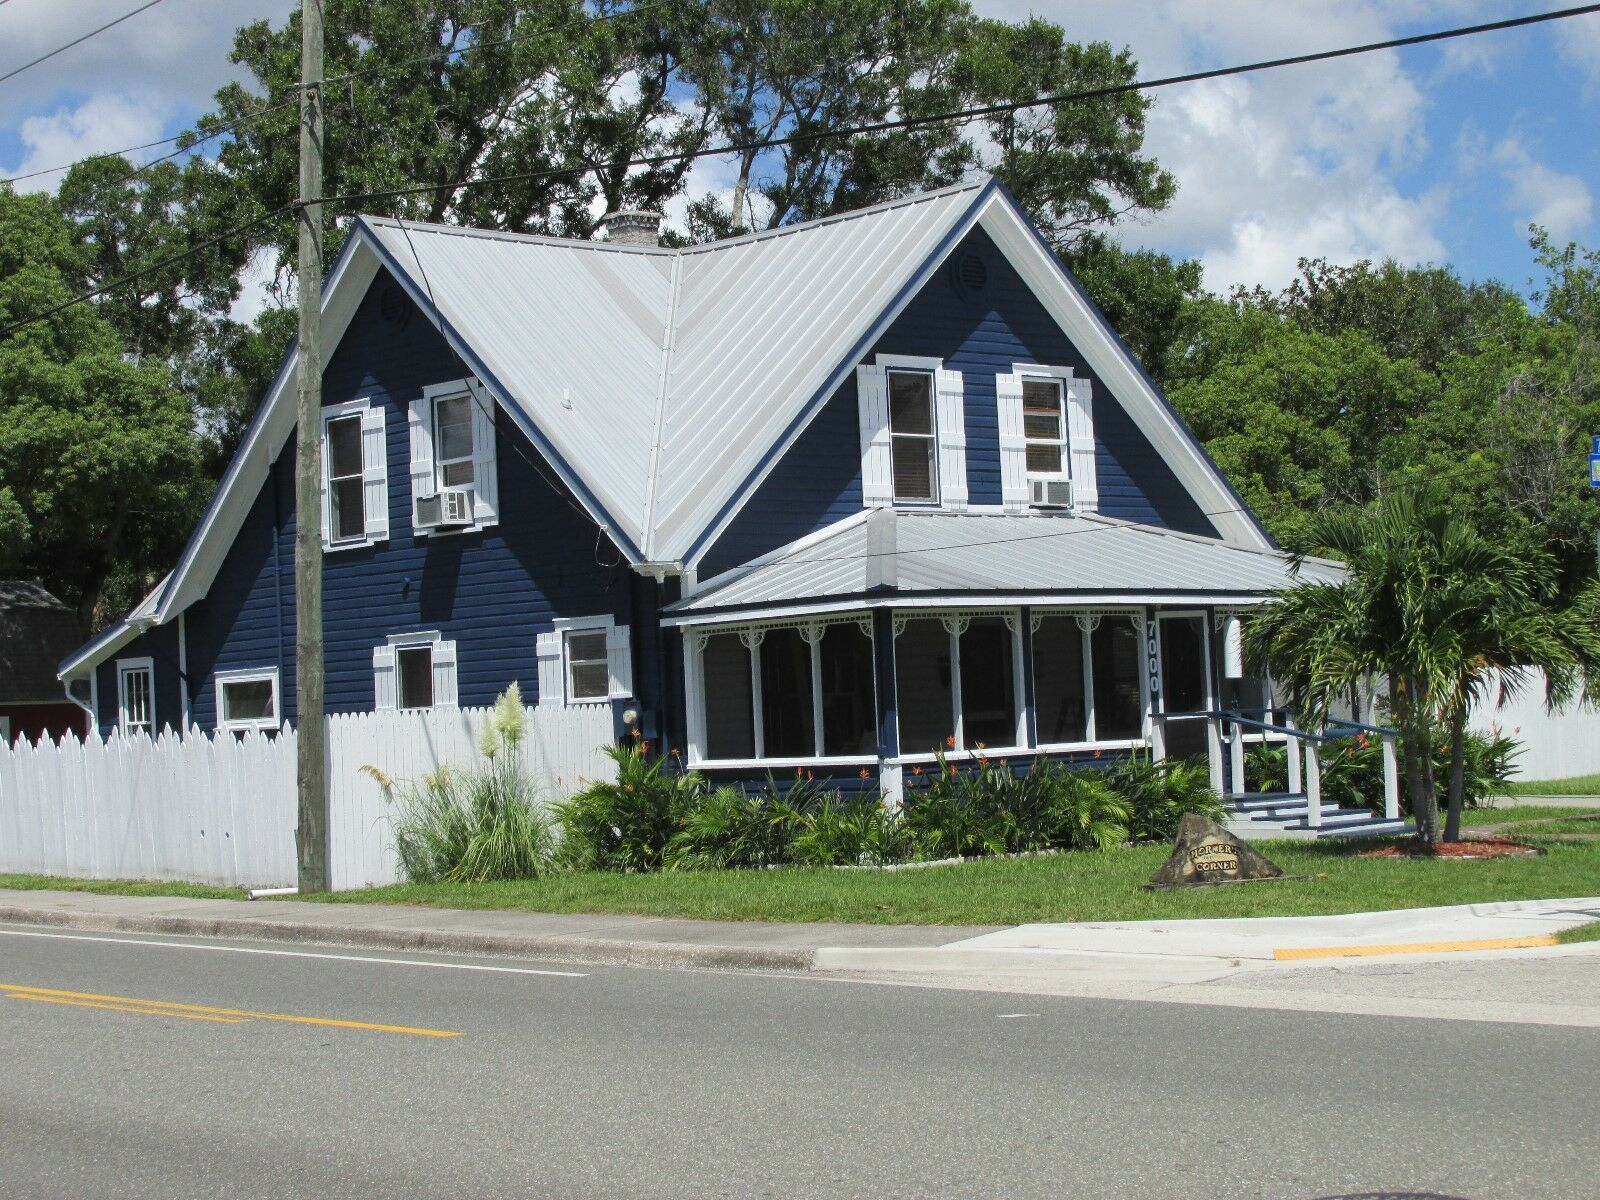 1912 ANTIQUE FLORIDA HOME FOR SALE - FULLY FURNISHED-IN FLORIDA - $480,000.00